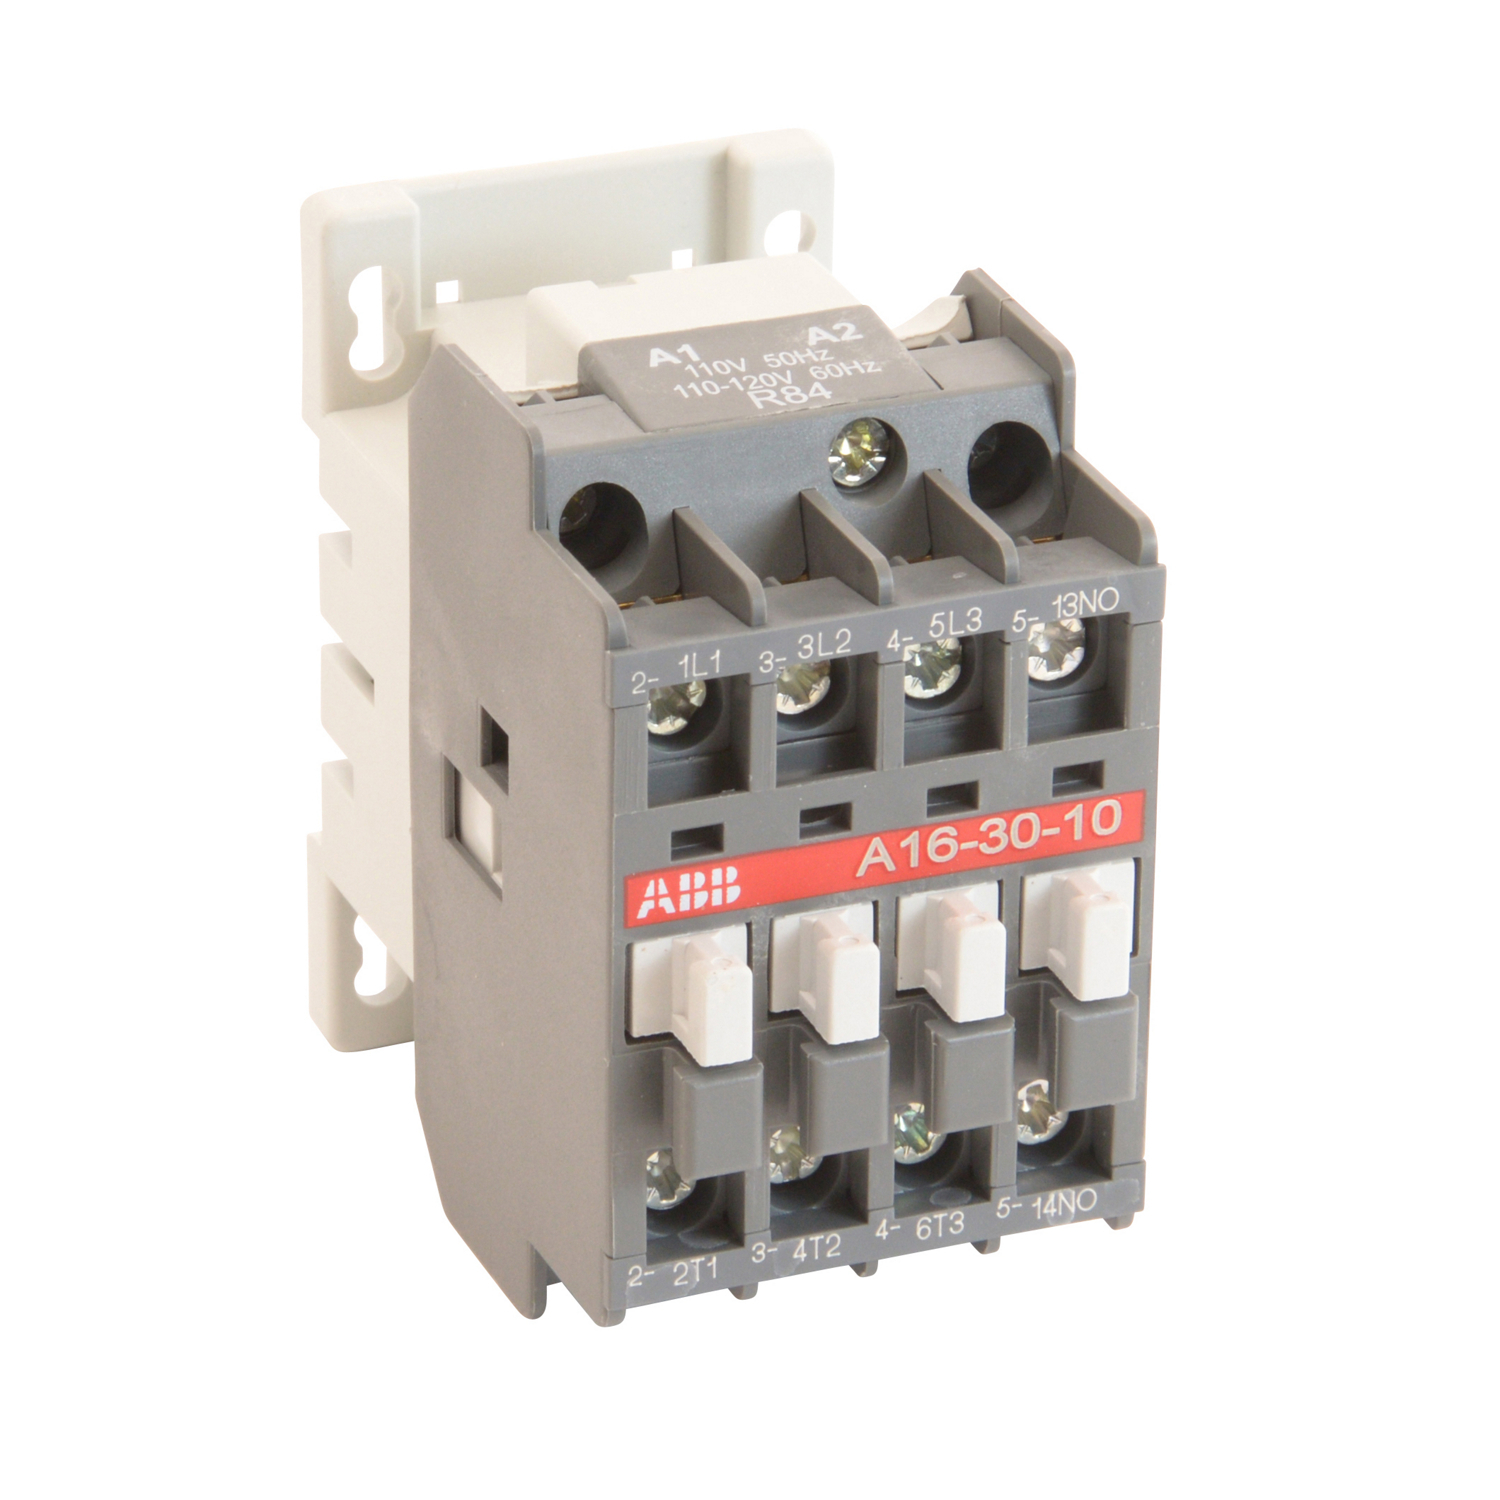 Abb Switch Wiring Diagram - Wiring Diagrams on